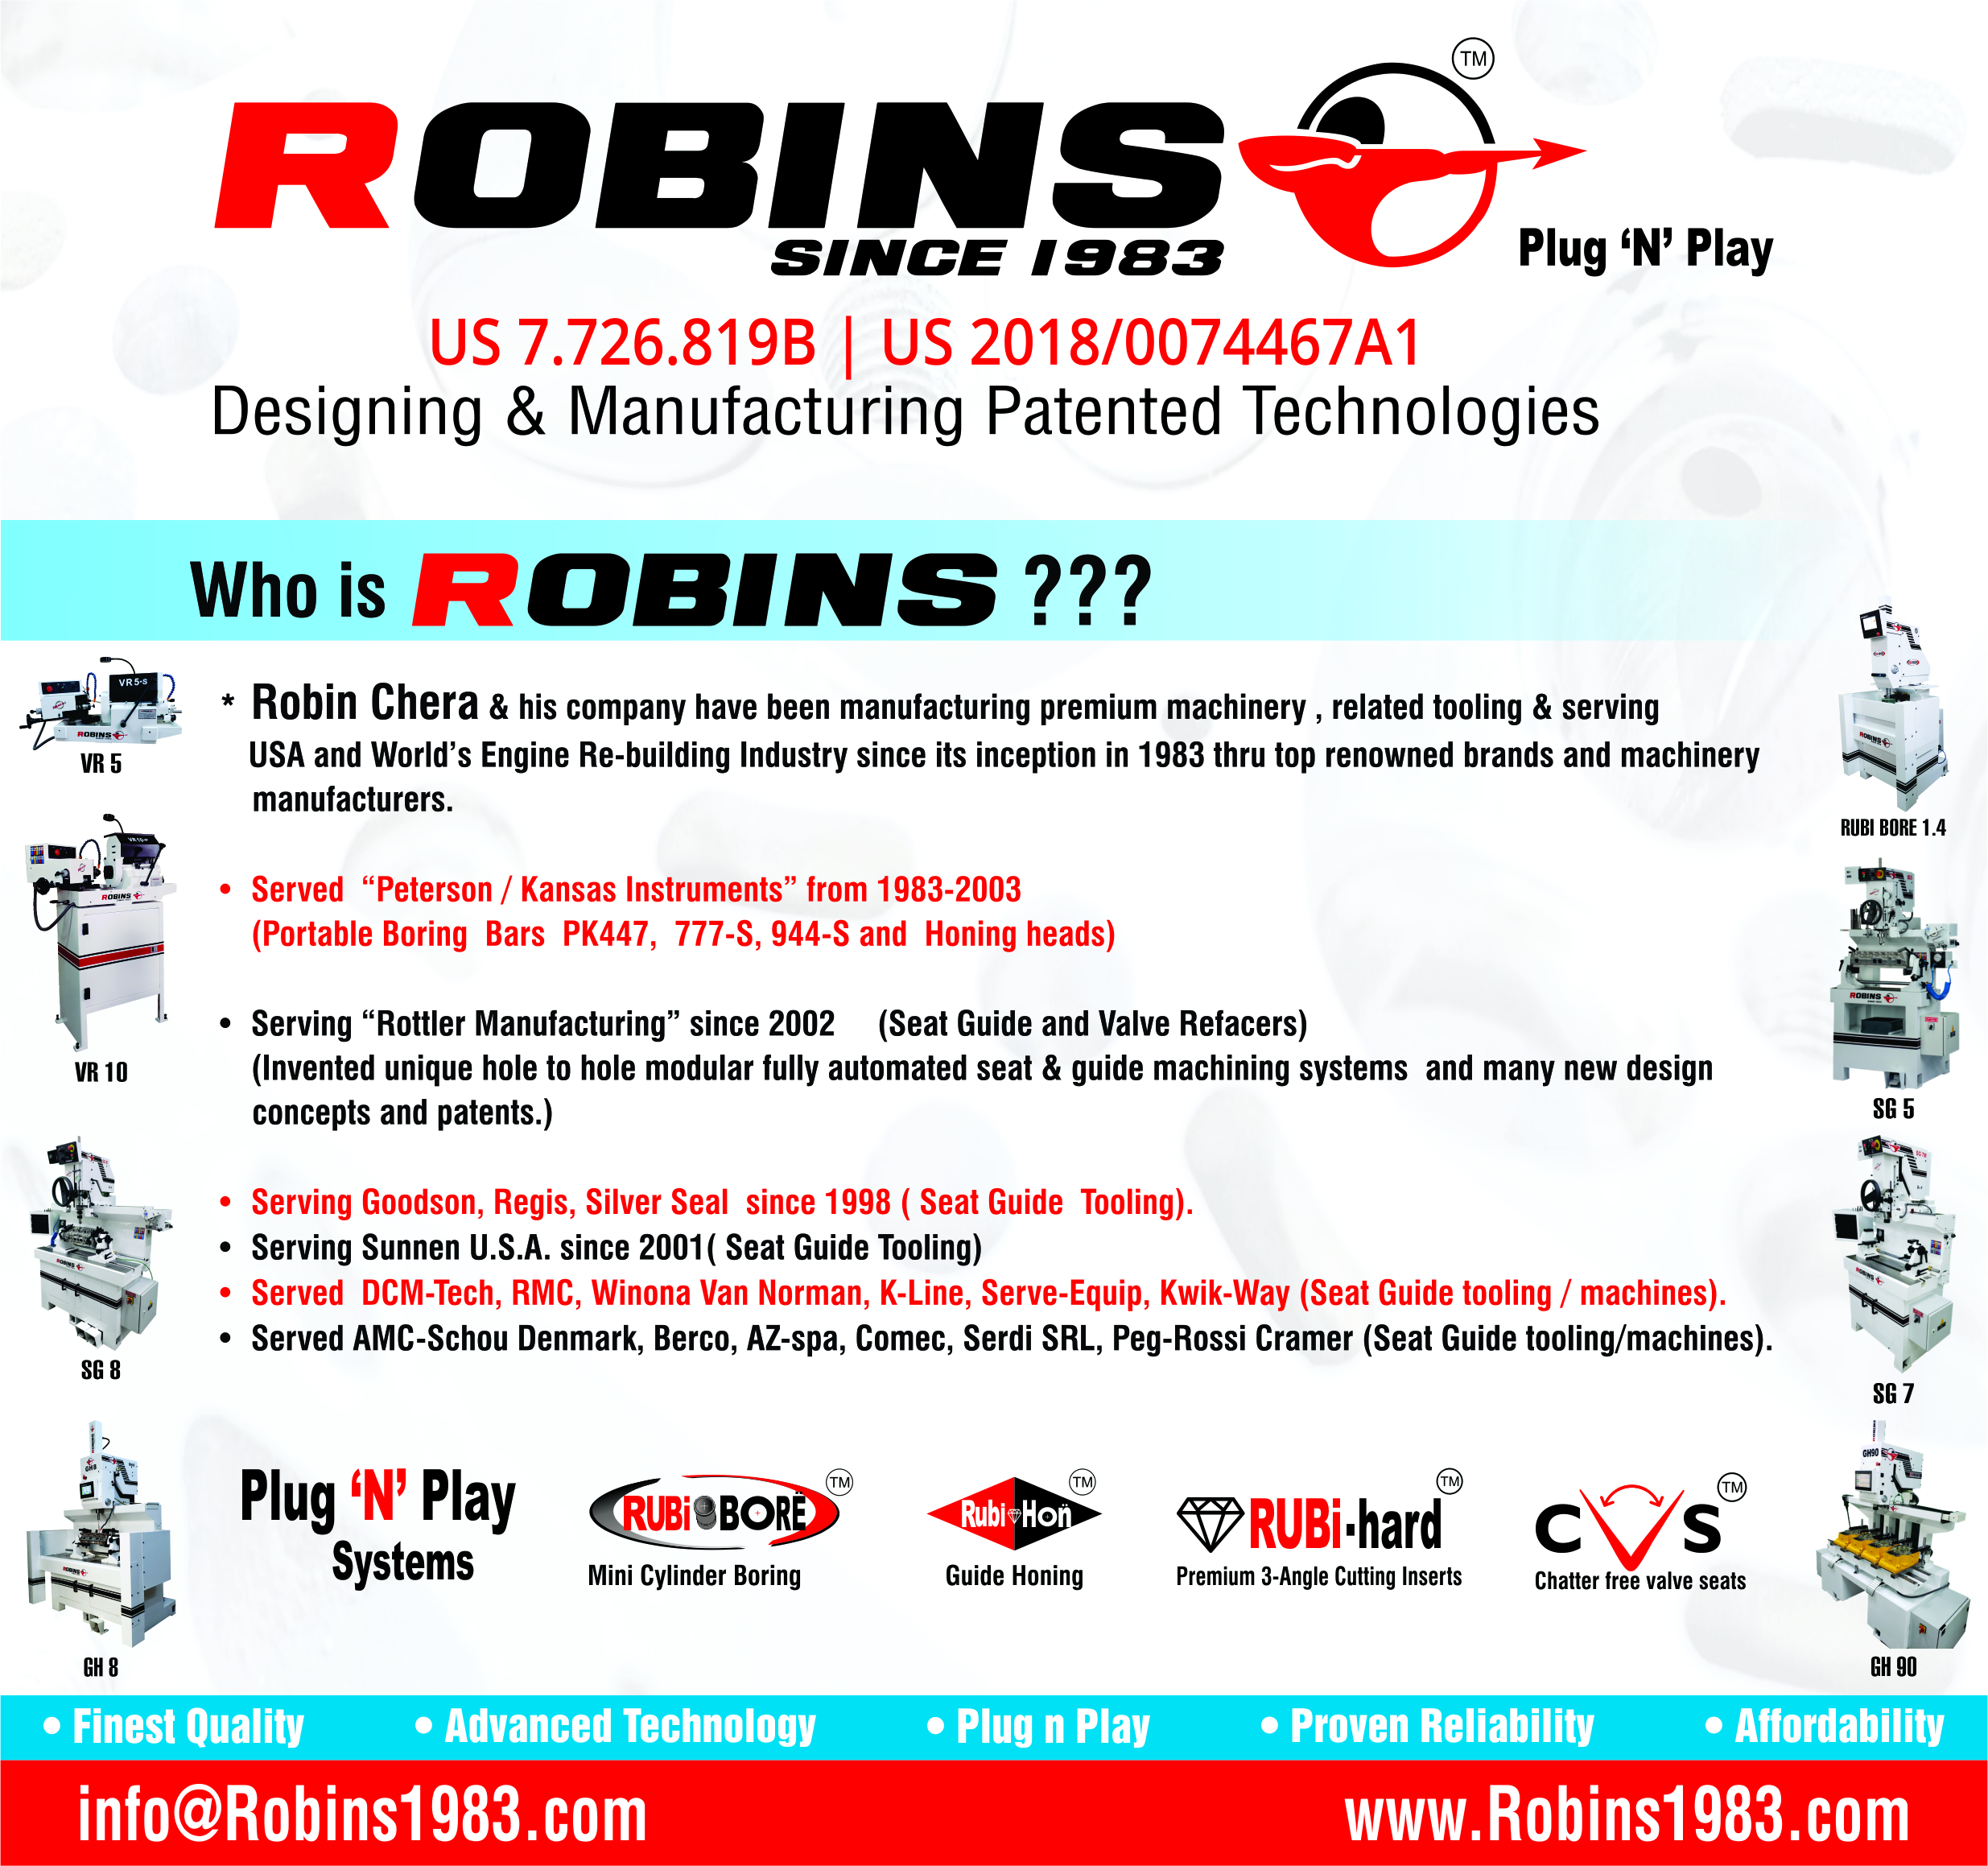 Who-is-Robins-ad-1